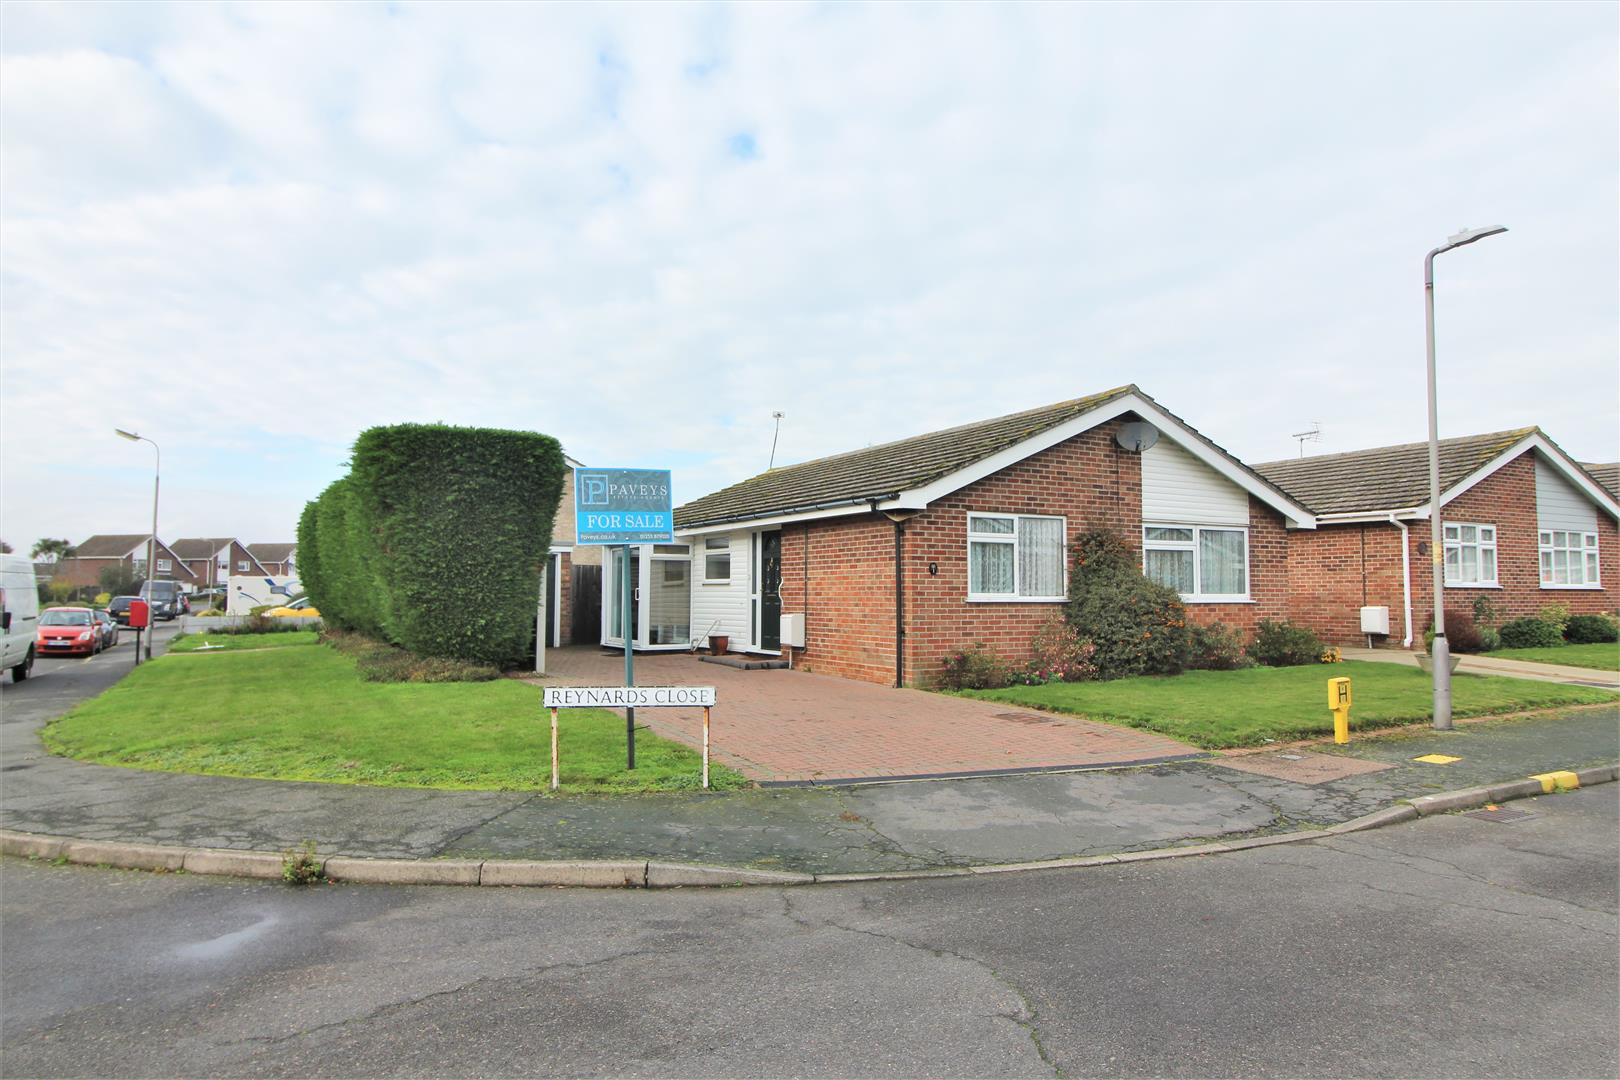 Reynards Close, Kirby Cross, Essex, CO13 0RA